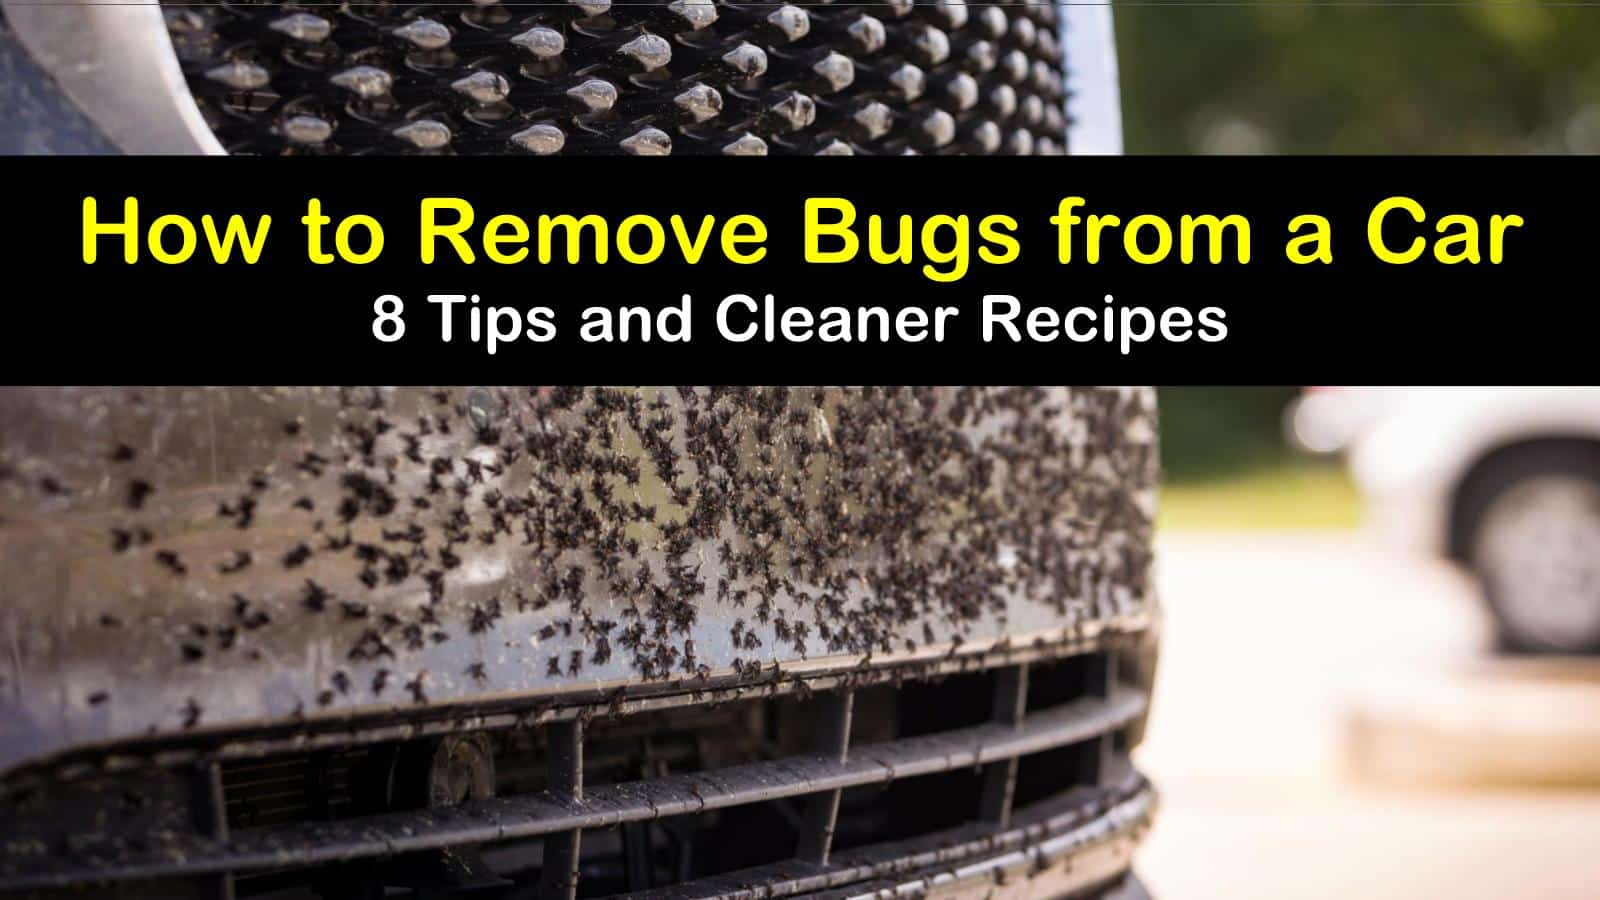 how to remove bugs from a car titleimg1